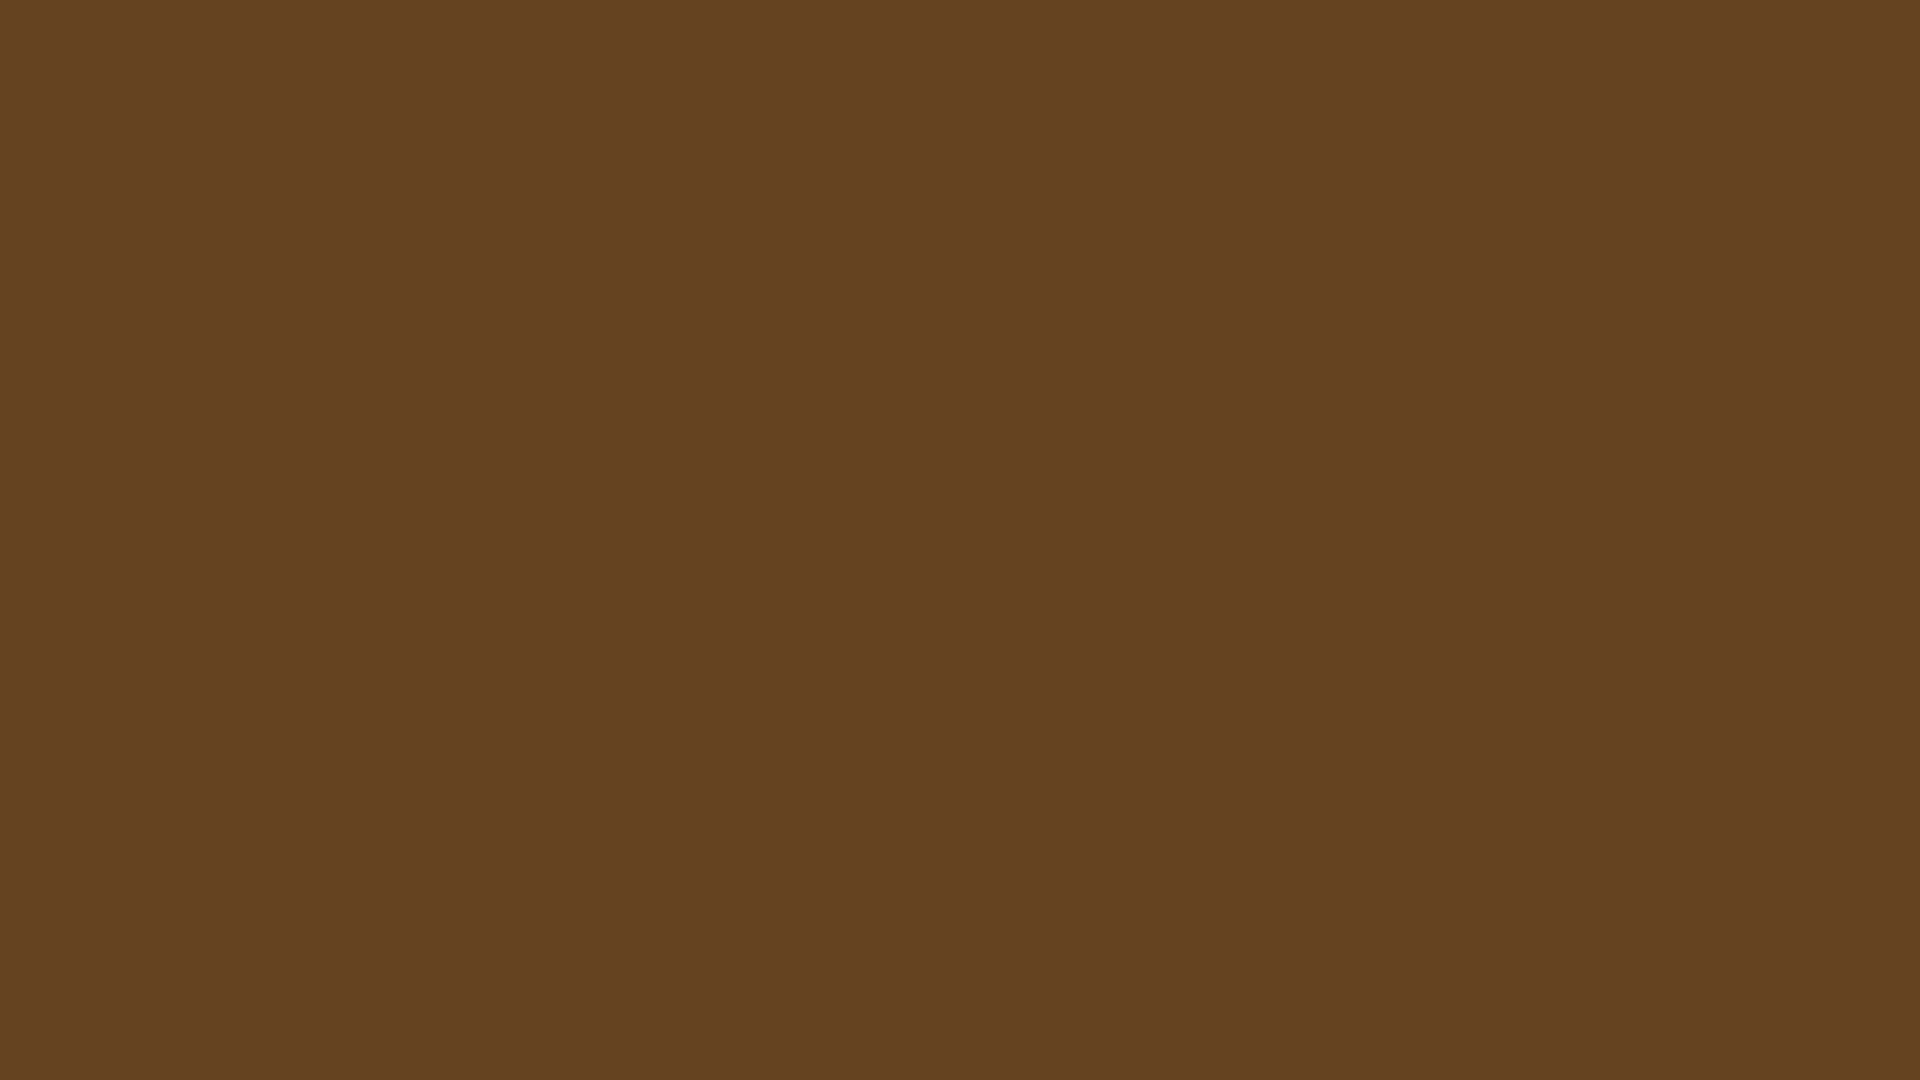 1920x1080 Dark Brown Solid Color Background